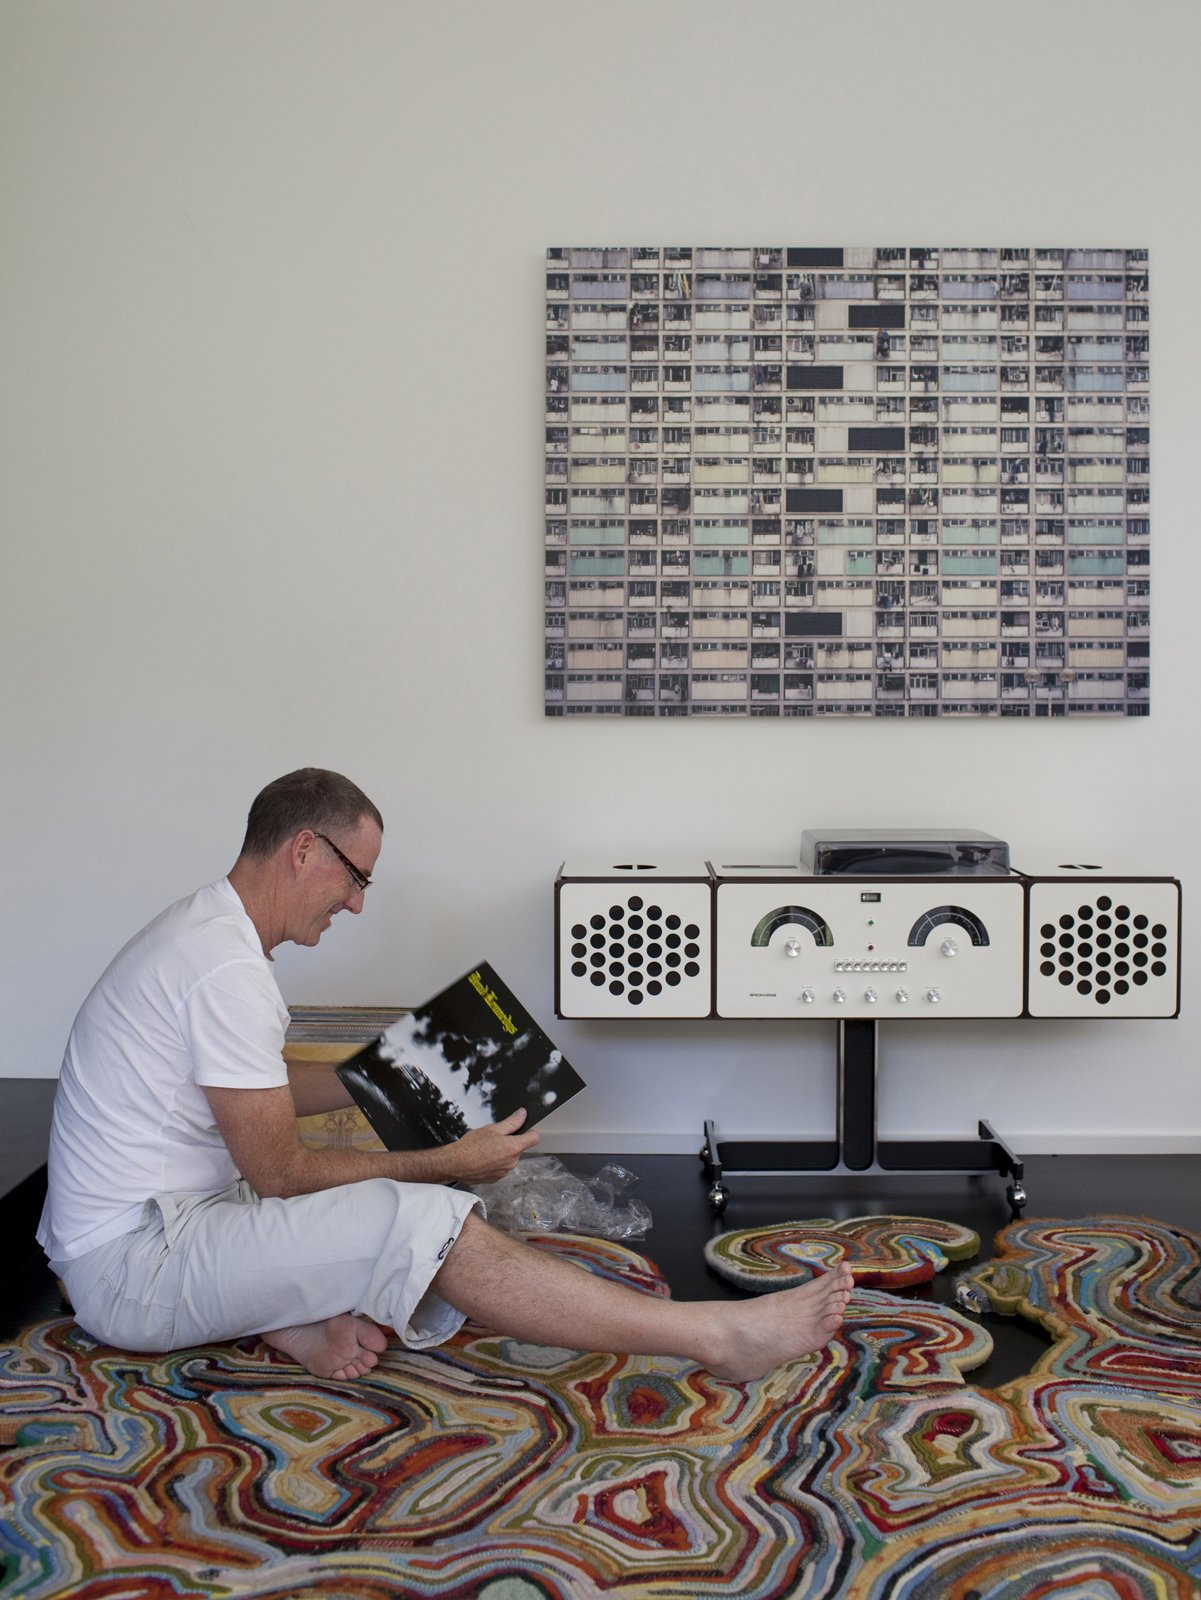 Sitting on the Recycled Blanket Rug by Tejo Remy and Rene VeenHuizen, Chris digs through his records looking for something to play on the new Brionvega RR226 by Achille Castiglioni.  Photo 3 of 10 in 7 Tips on How to Childproof Your Living Space Without Sacrificing Design from Designed In-House